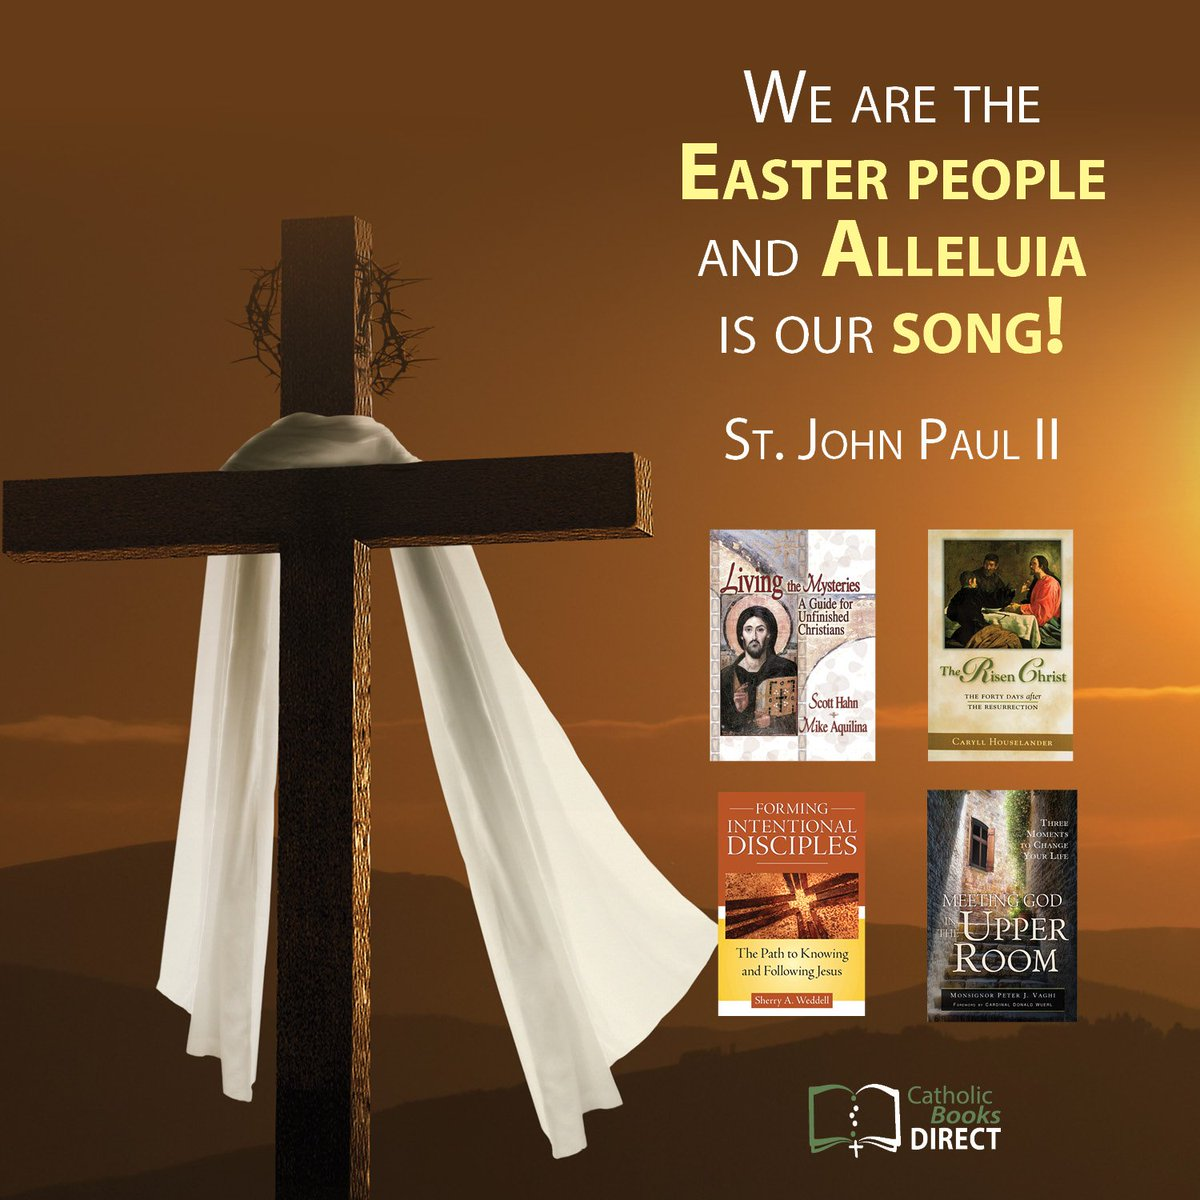 Happy #Easter from @CathBooksDirect! May this Easter season be the start of new beginnings and new life in Christ for you. Check out some of our titles on the Risen Christ, the early Church and discipleship. #Catholic #Easter2019 - https://mailchi.mp/5fabd5a17d7a/lent-challenge-867997…